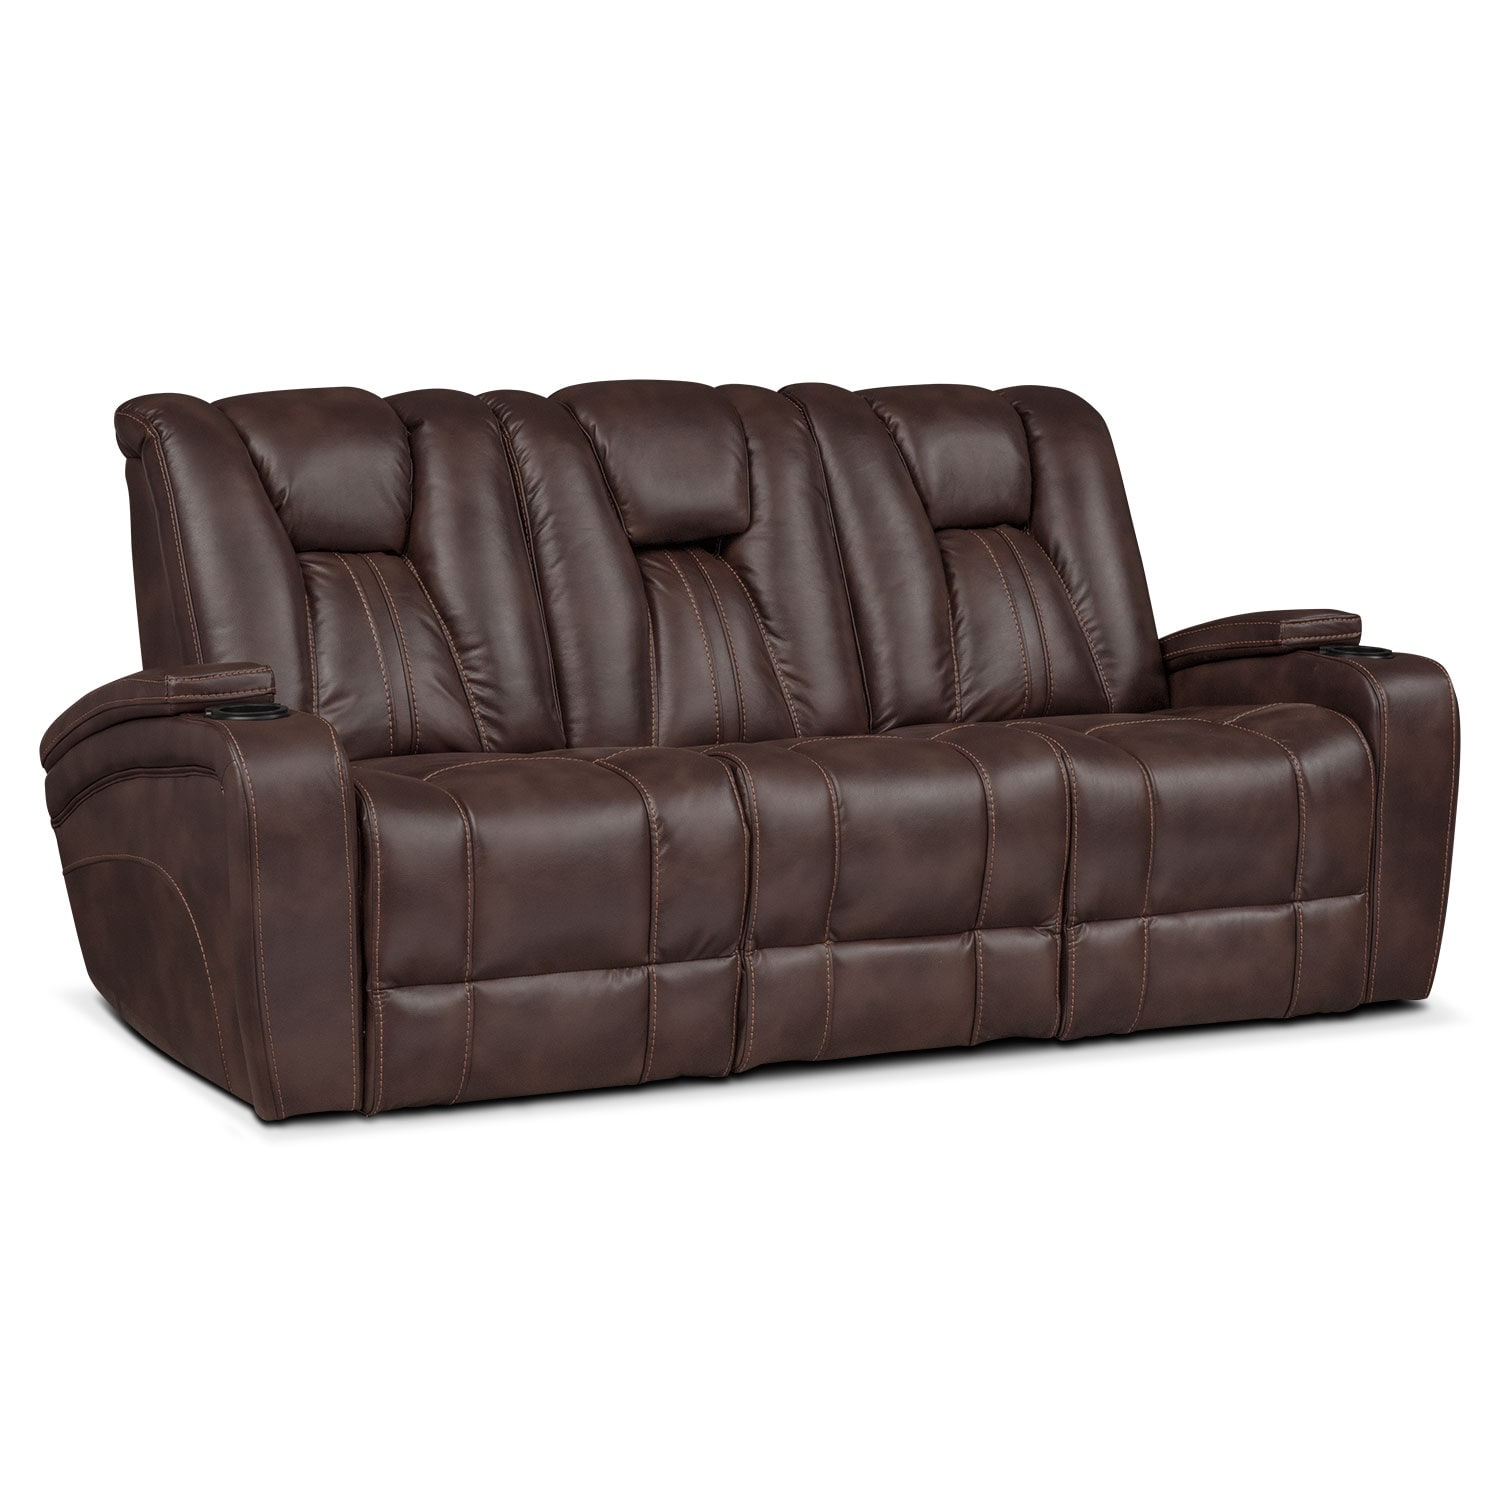 Pulsar dual power reclining sofa brown value city furniture Reclining loveseat sale